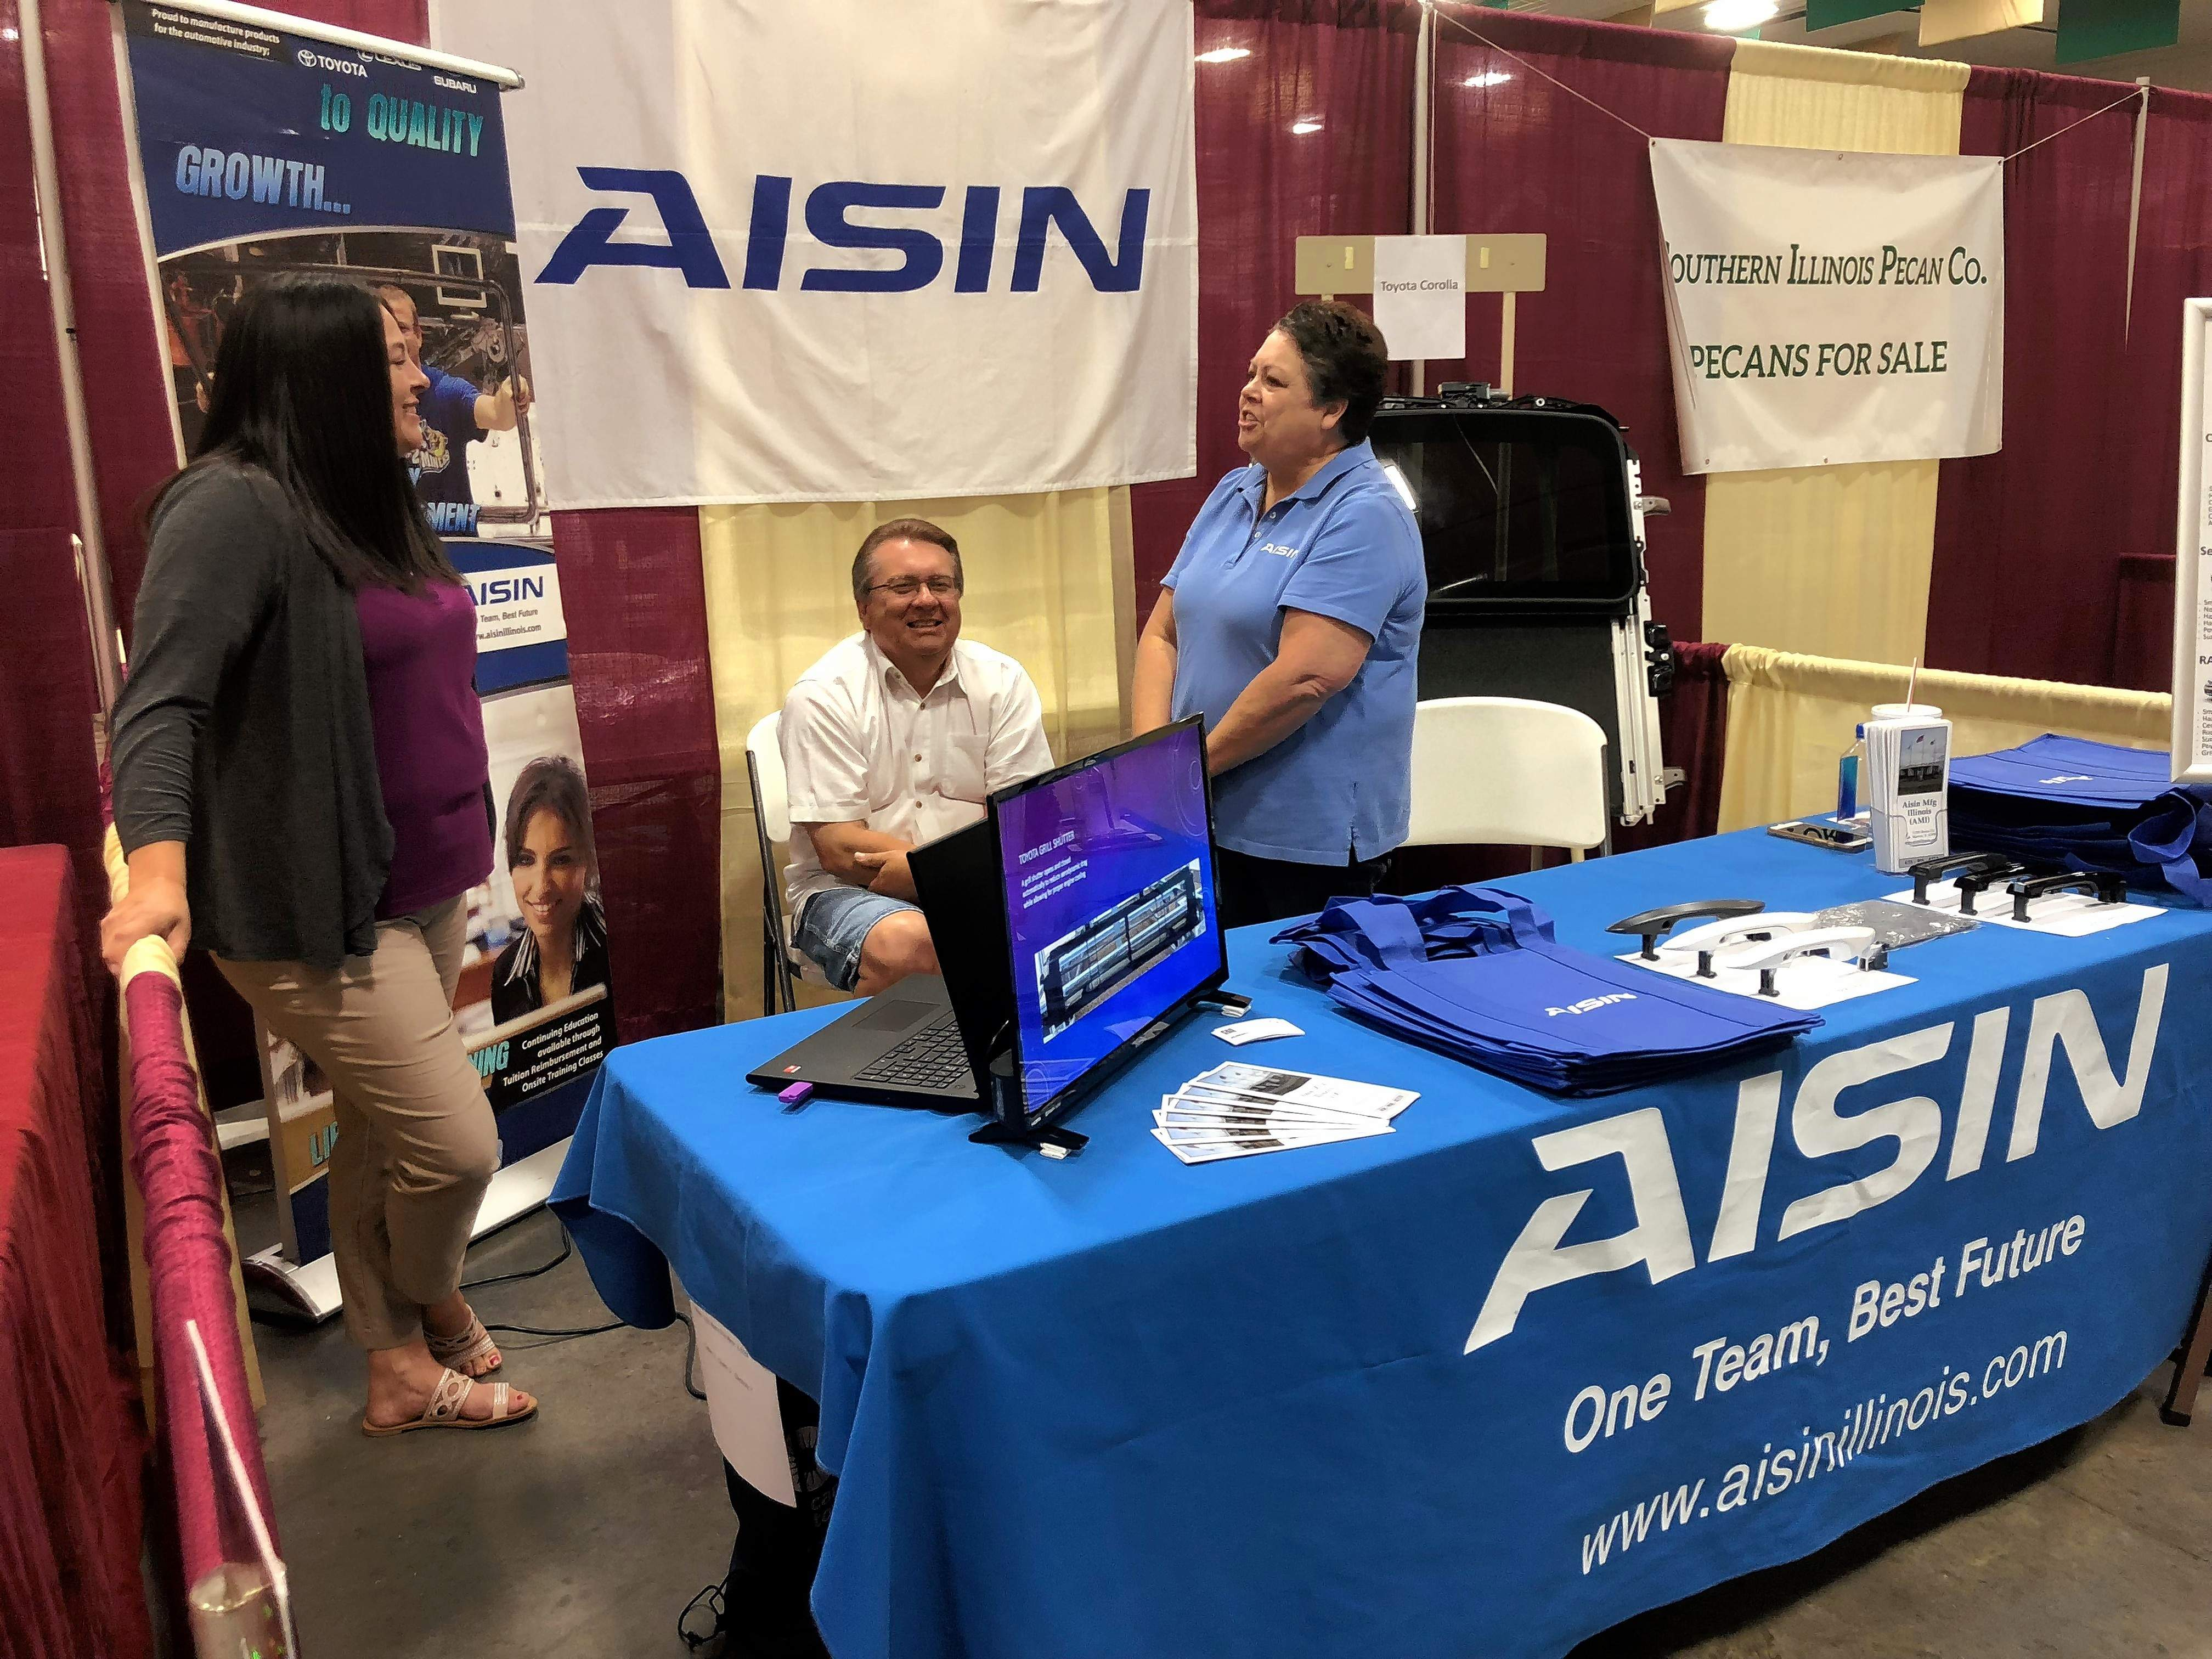 Bob Romonosky, middle, sits in as Renae Edwards, left, and Cheri Romonosky, right, of Aisin explain to visitors what their company contributes to southern Illinois.